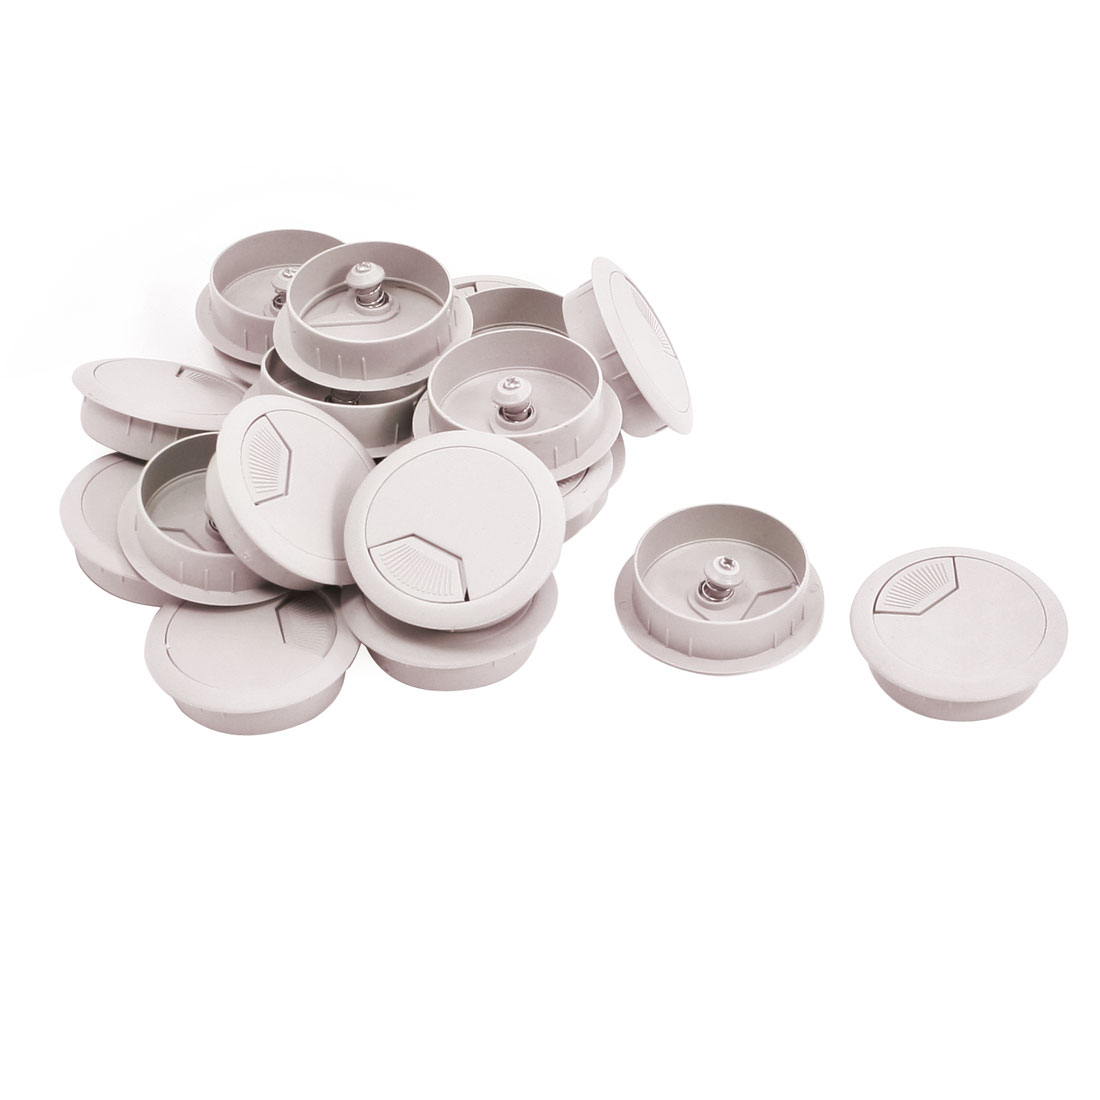 20pcs Office PC Computer Desk 50mm Diameter Grommet Cable Hole Cover Light Gray